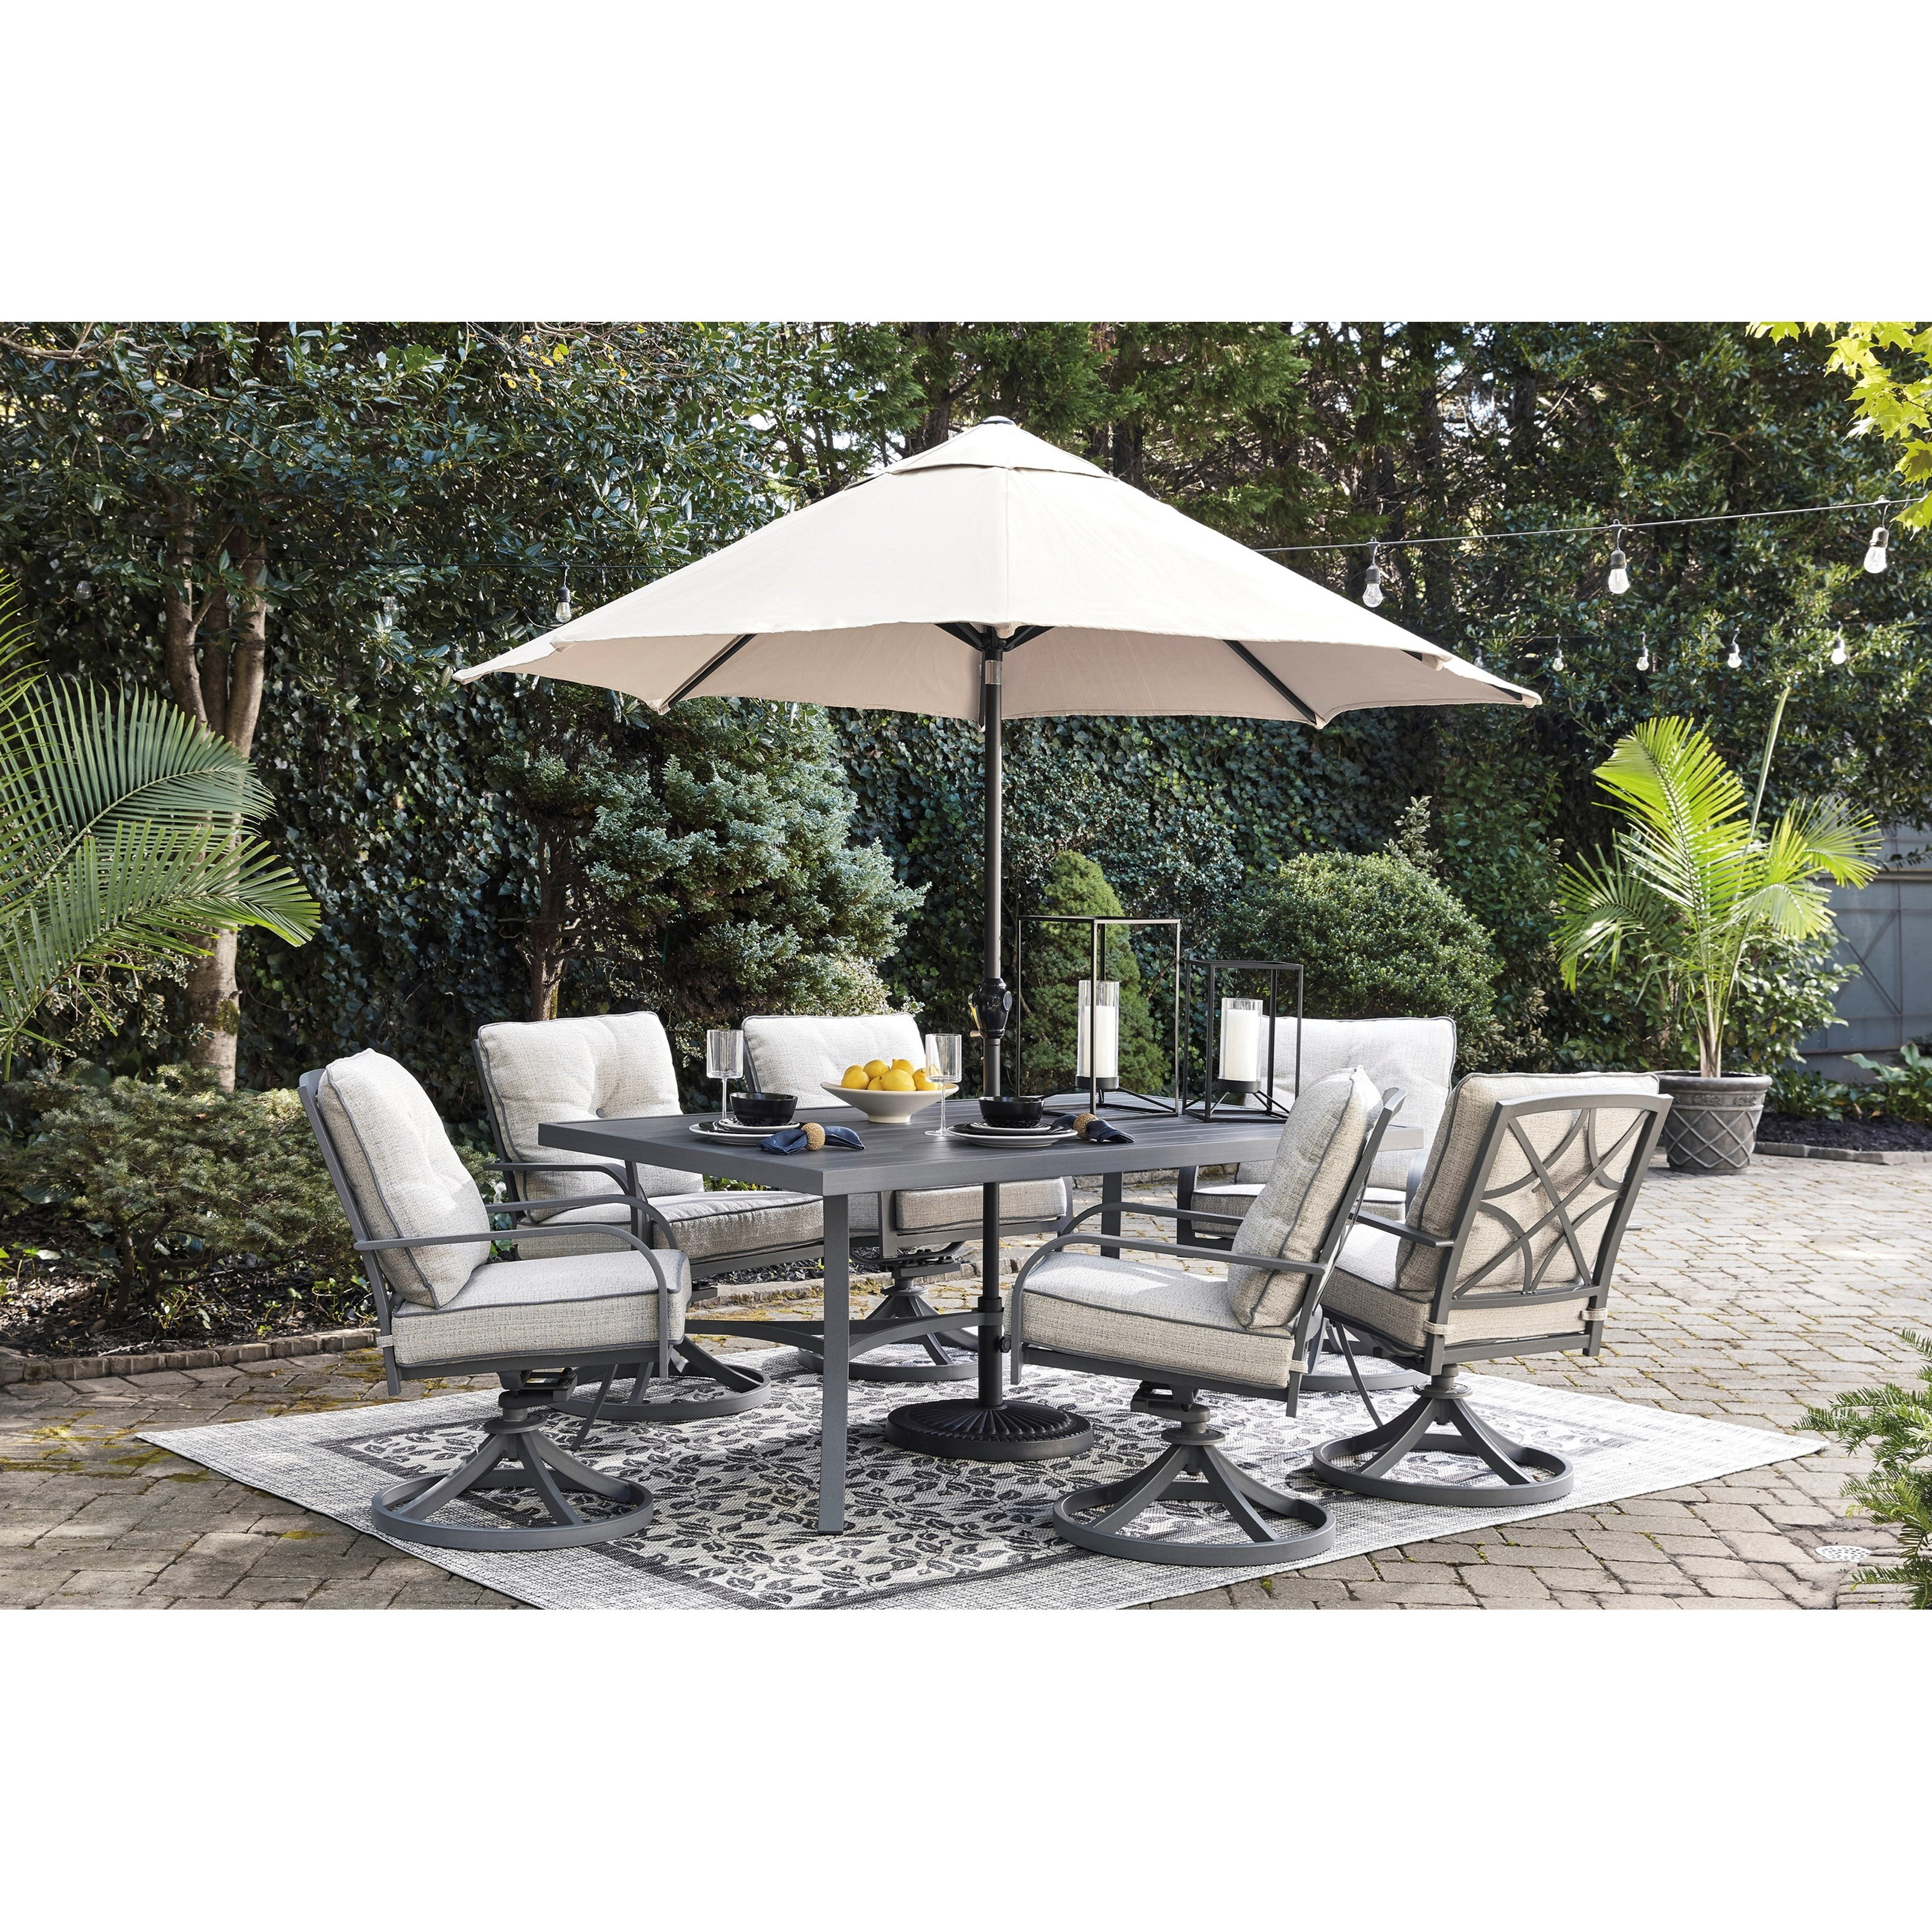 Signature Design By Ashley Furniture Hayley 7 Piece Dining: Signature Design By Ashley Donnalee Bay 7 Piece Outdoor